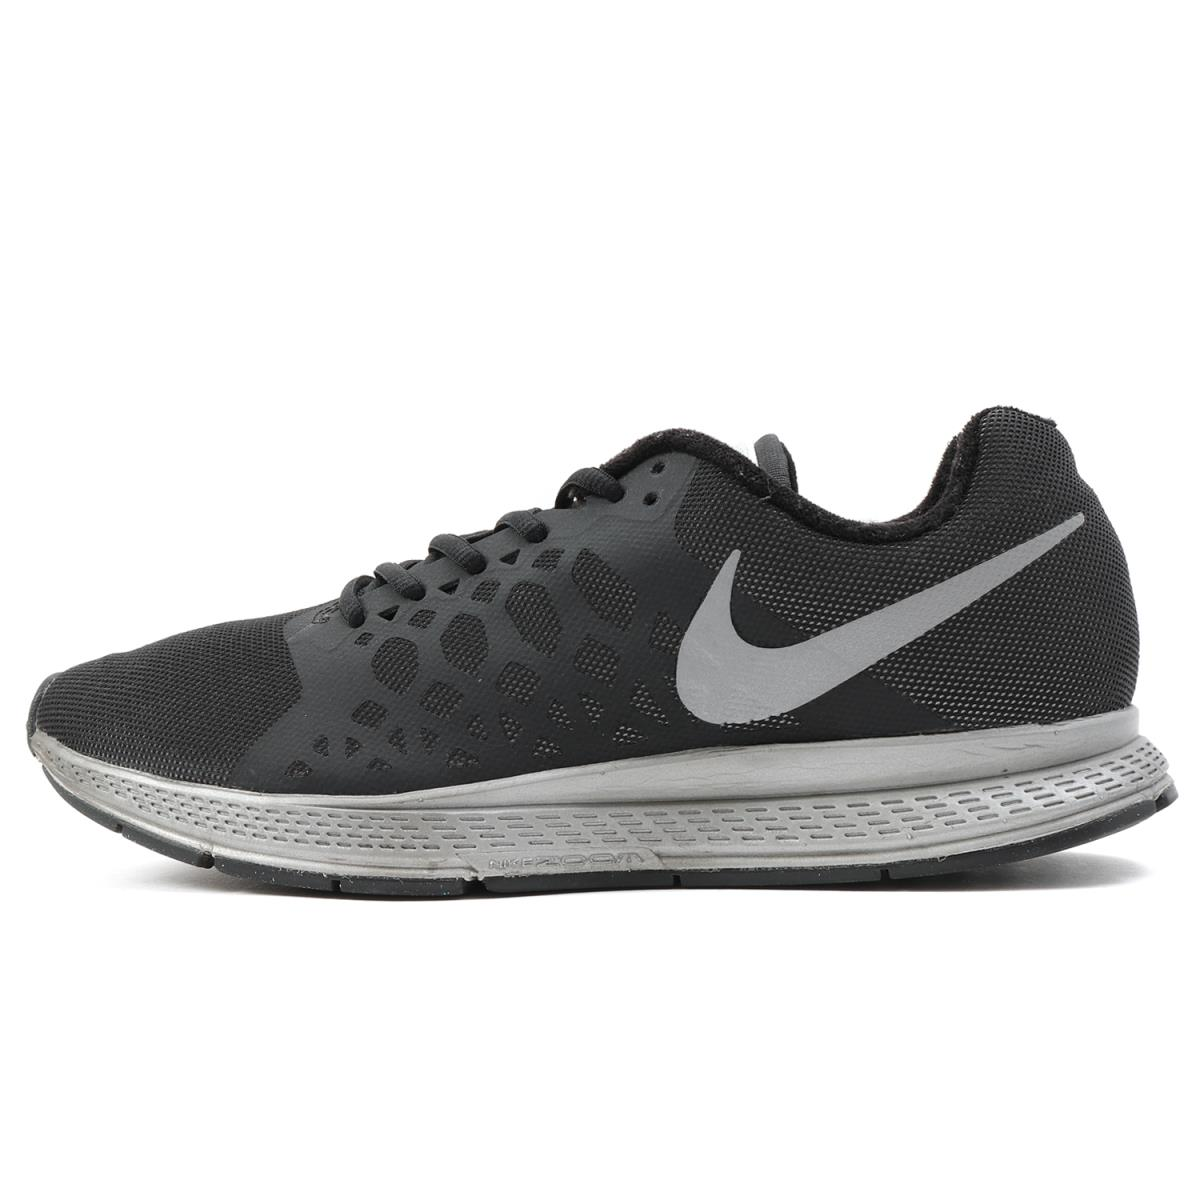 the best attitude 1153b 1bf9a NIKE (Nike) ZOOM PEGASUS 31 FLASH (683,676-001) black X riff ...